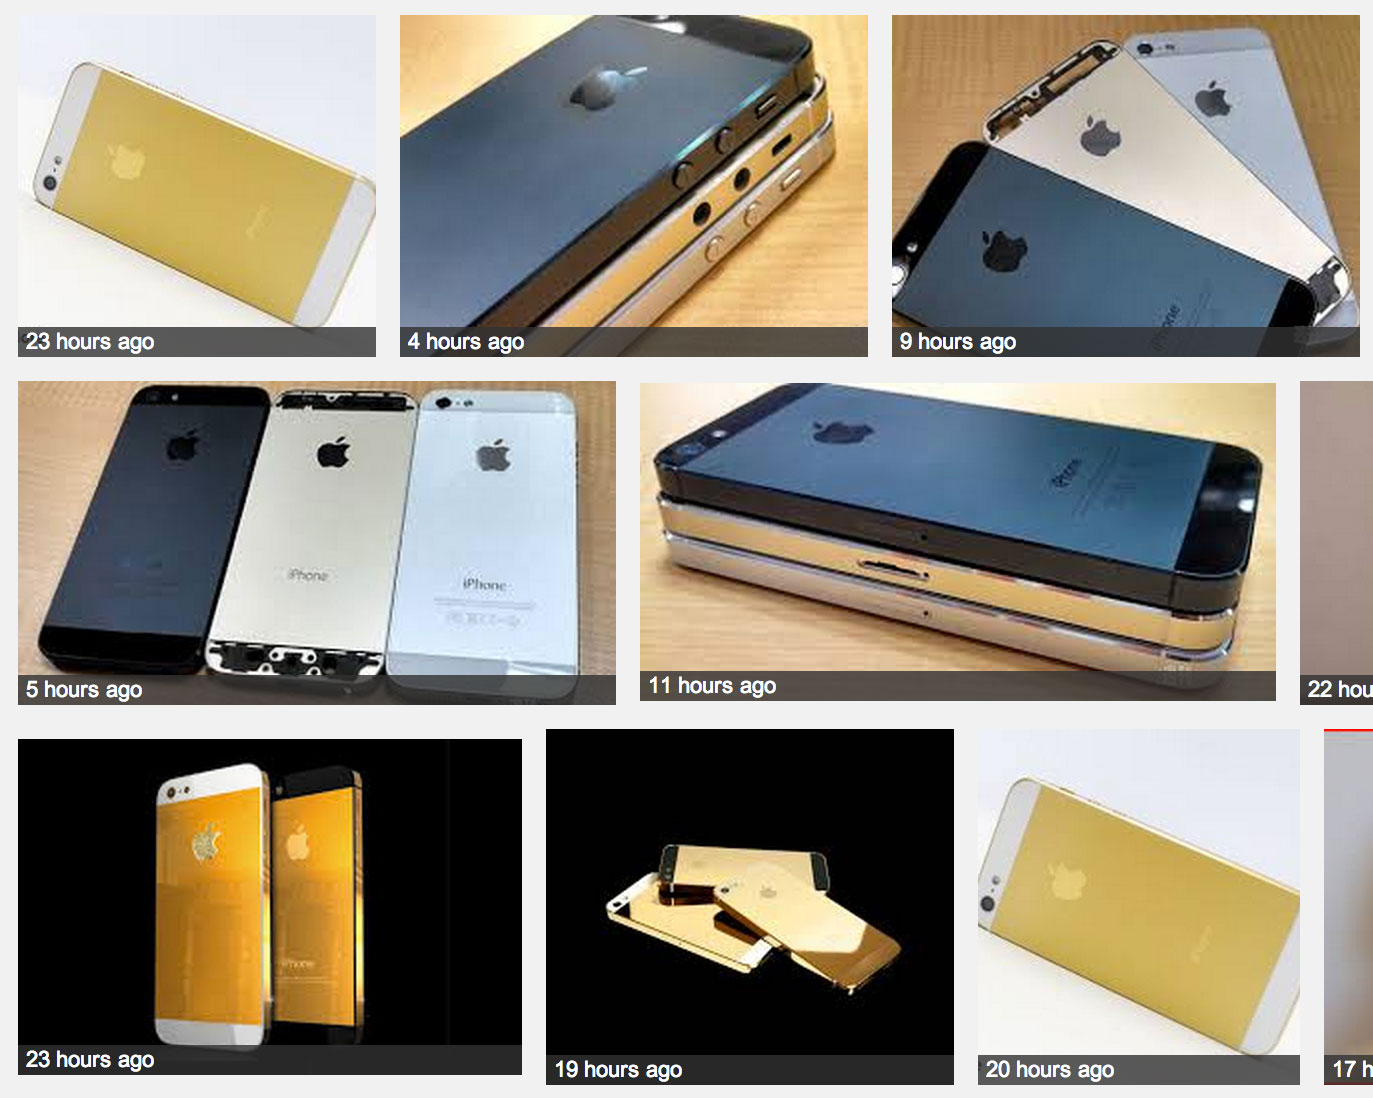 Photos shown in Web search for gold iPhone